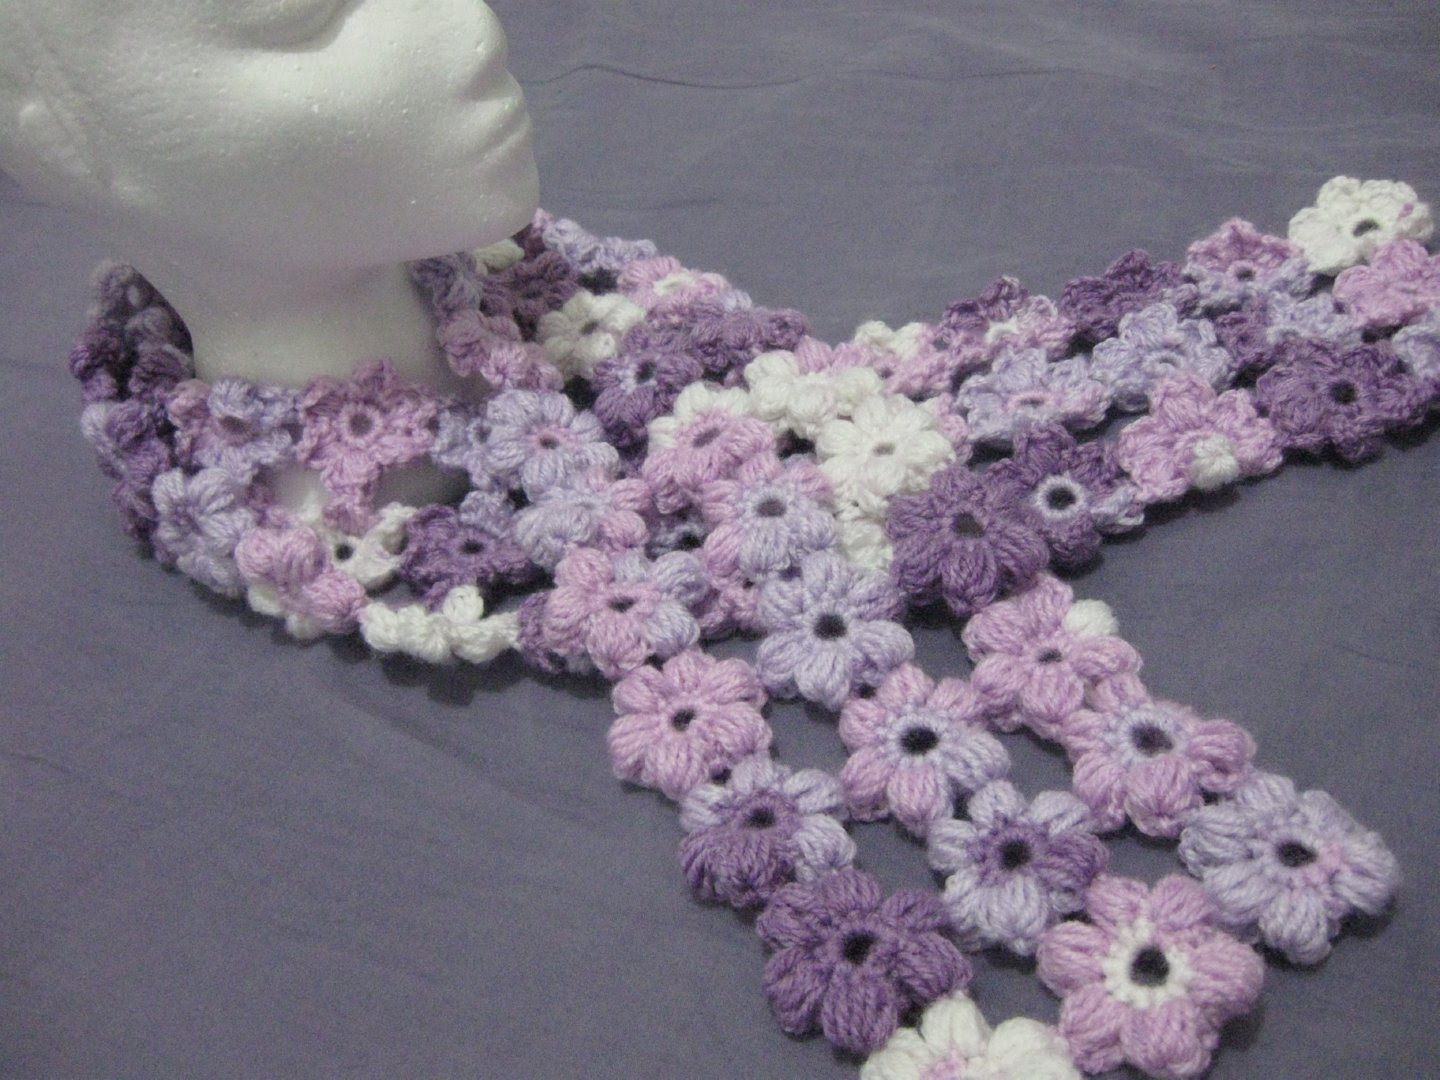 Gorgeous Scrap Yarn Puff Stitch Flower Scarf Pattern To Amp Up Your ...